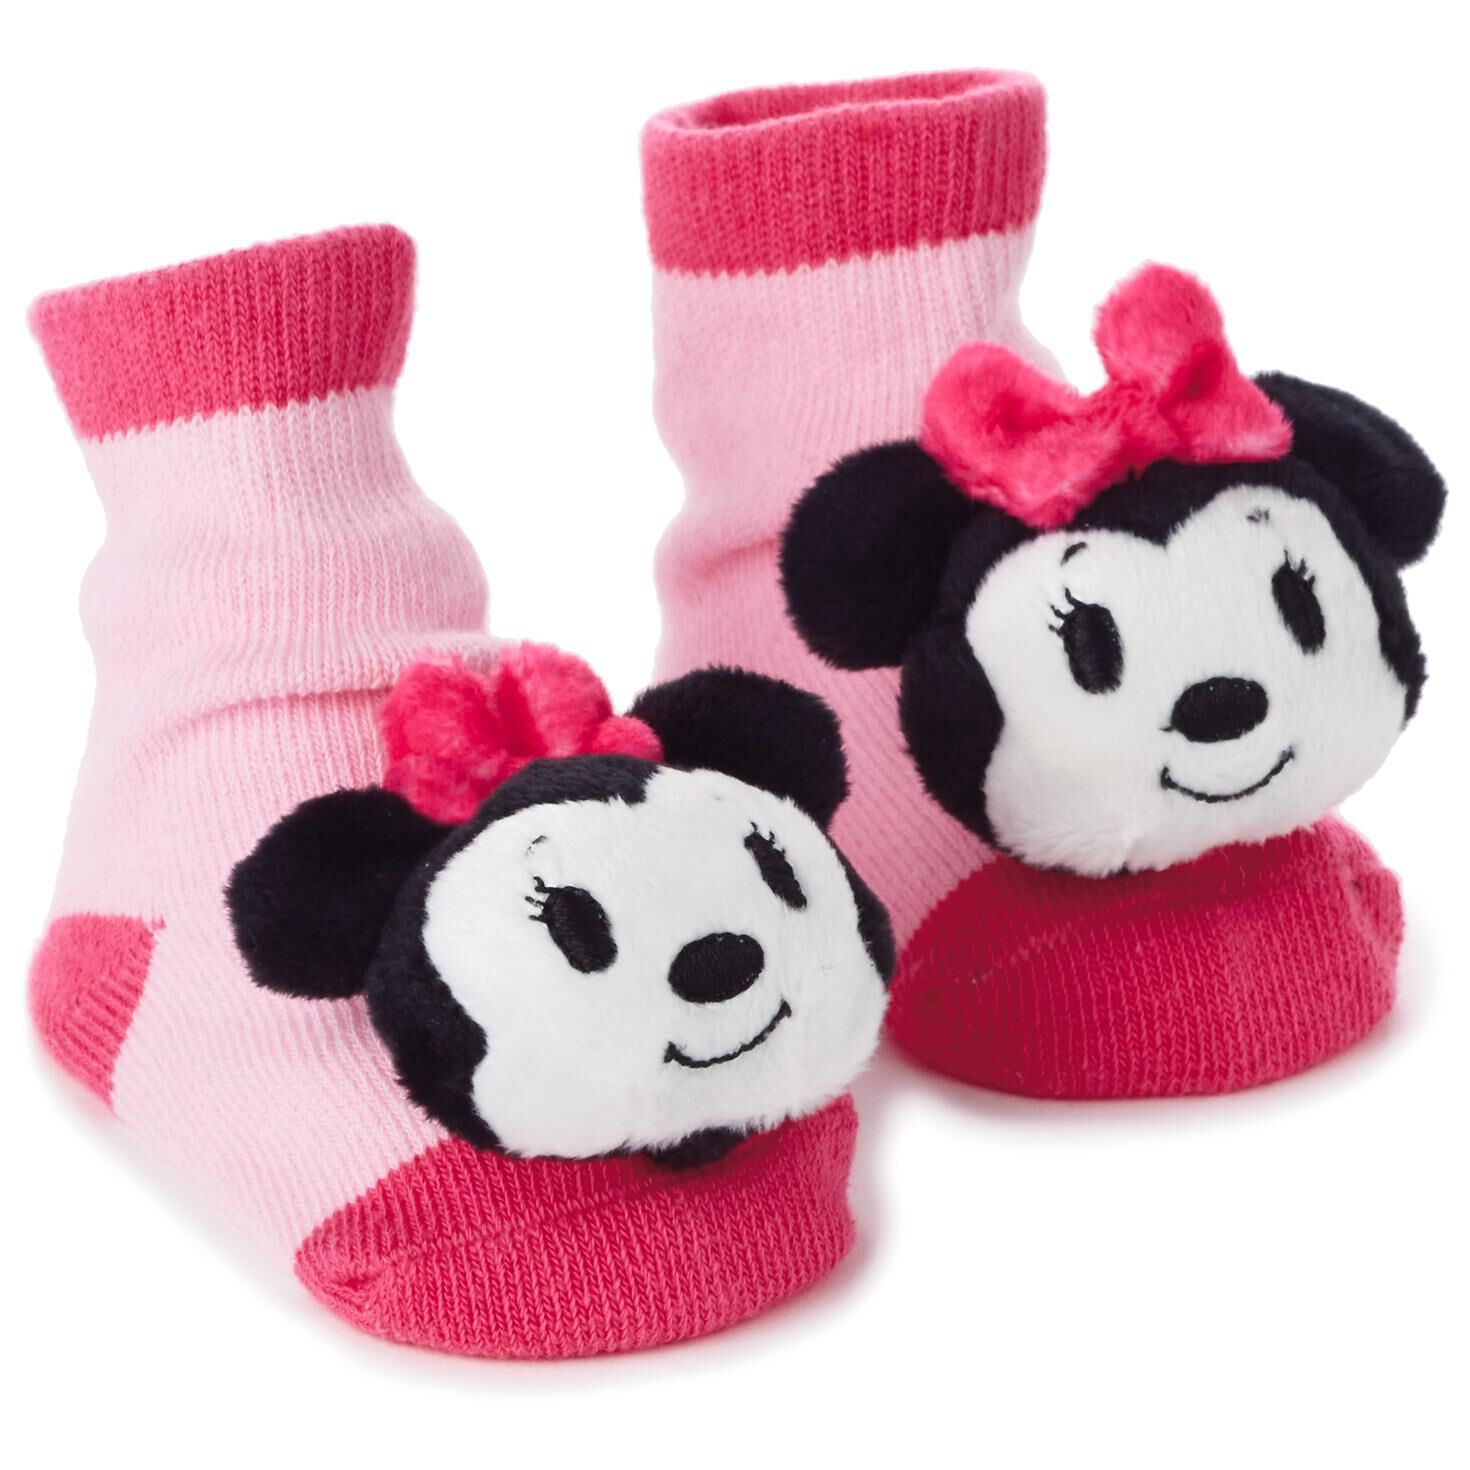 Minnie Mouse itty bittys Baby Rattle Socks Baby Clothes Hallmark